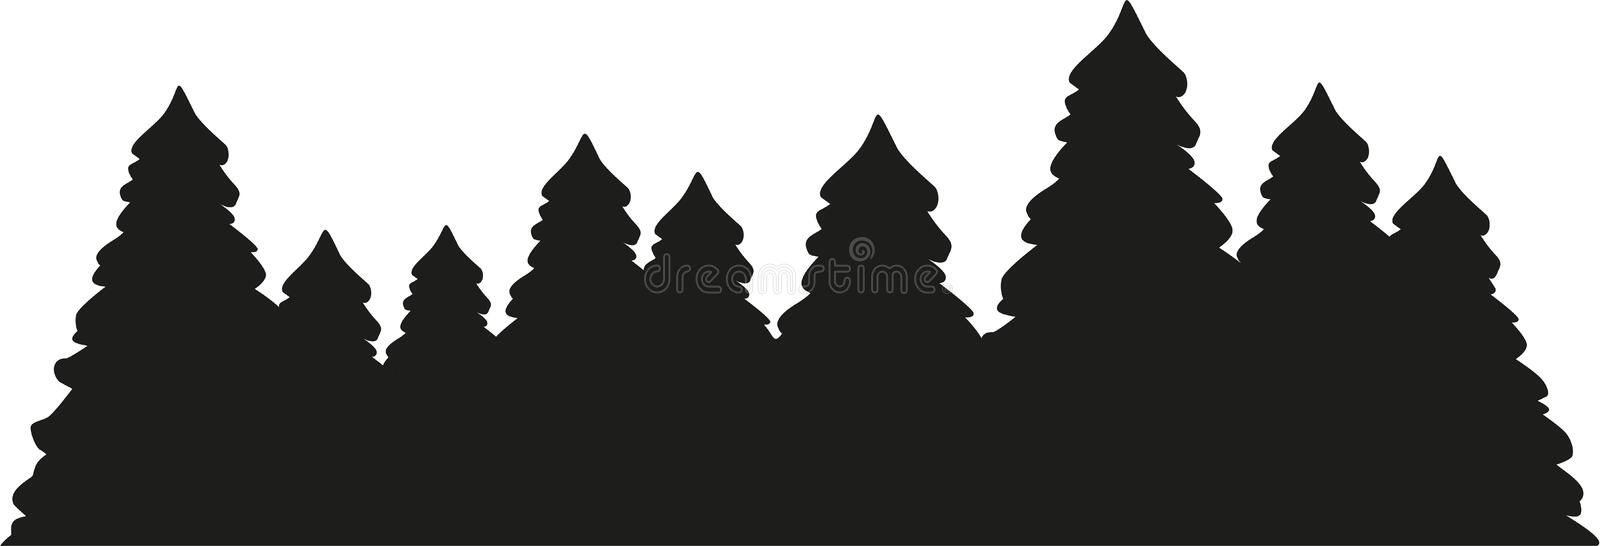 Fir tree forest silhouette. Vector stock illustration